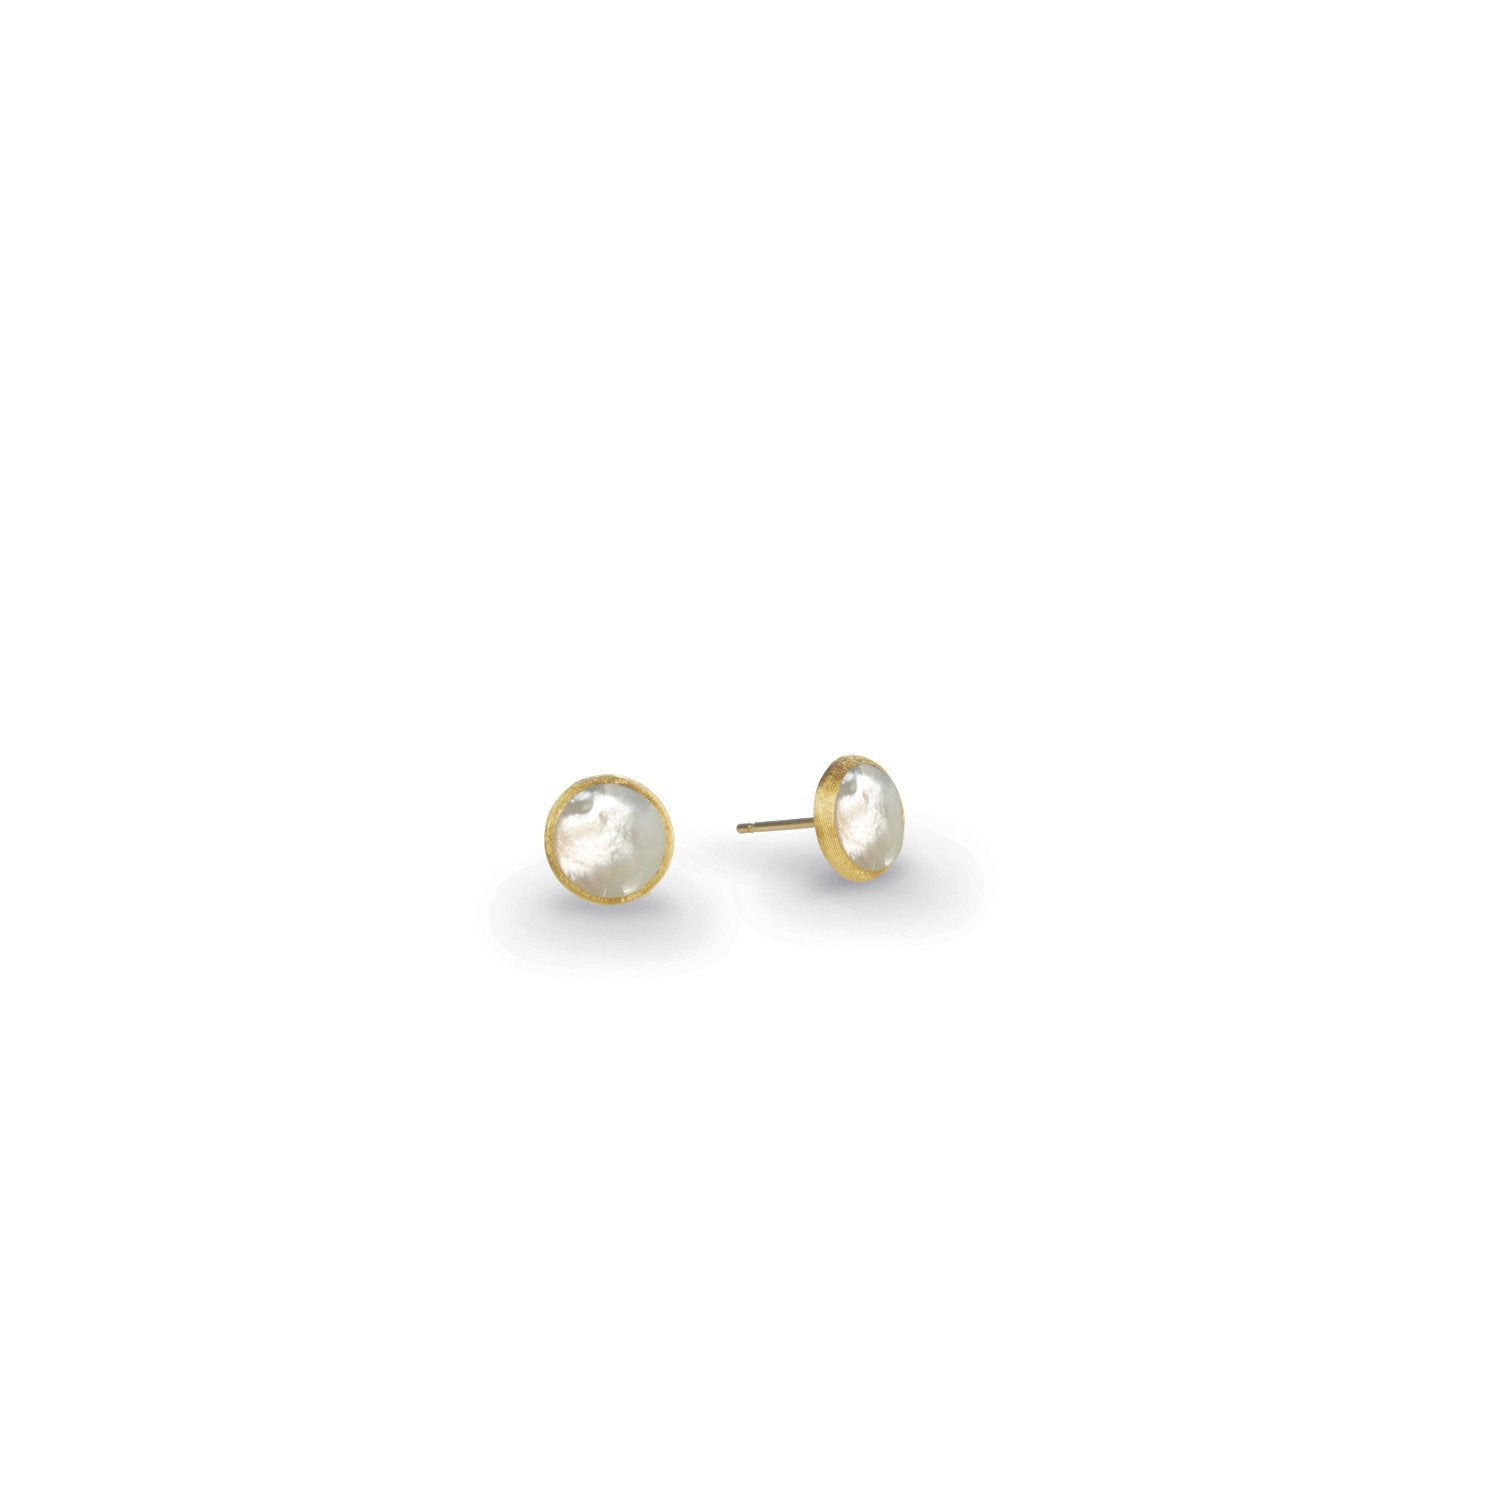 18K Gold Mother Of Pearl Stud Earrings